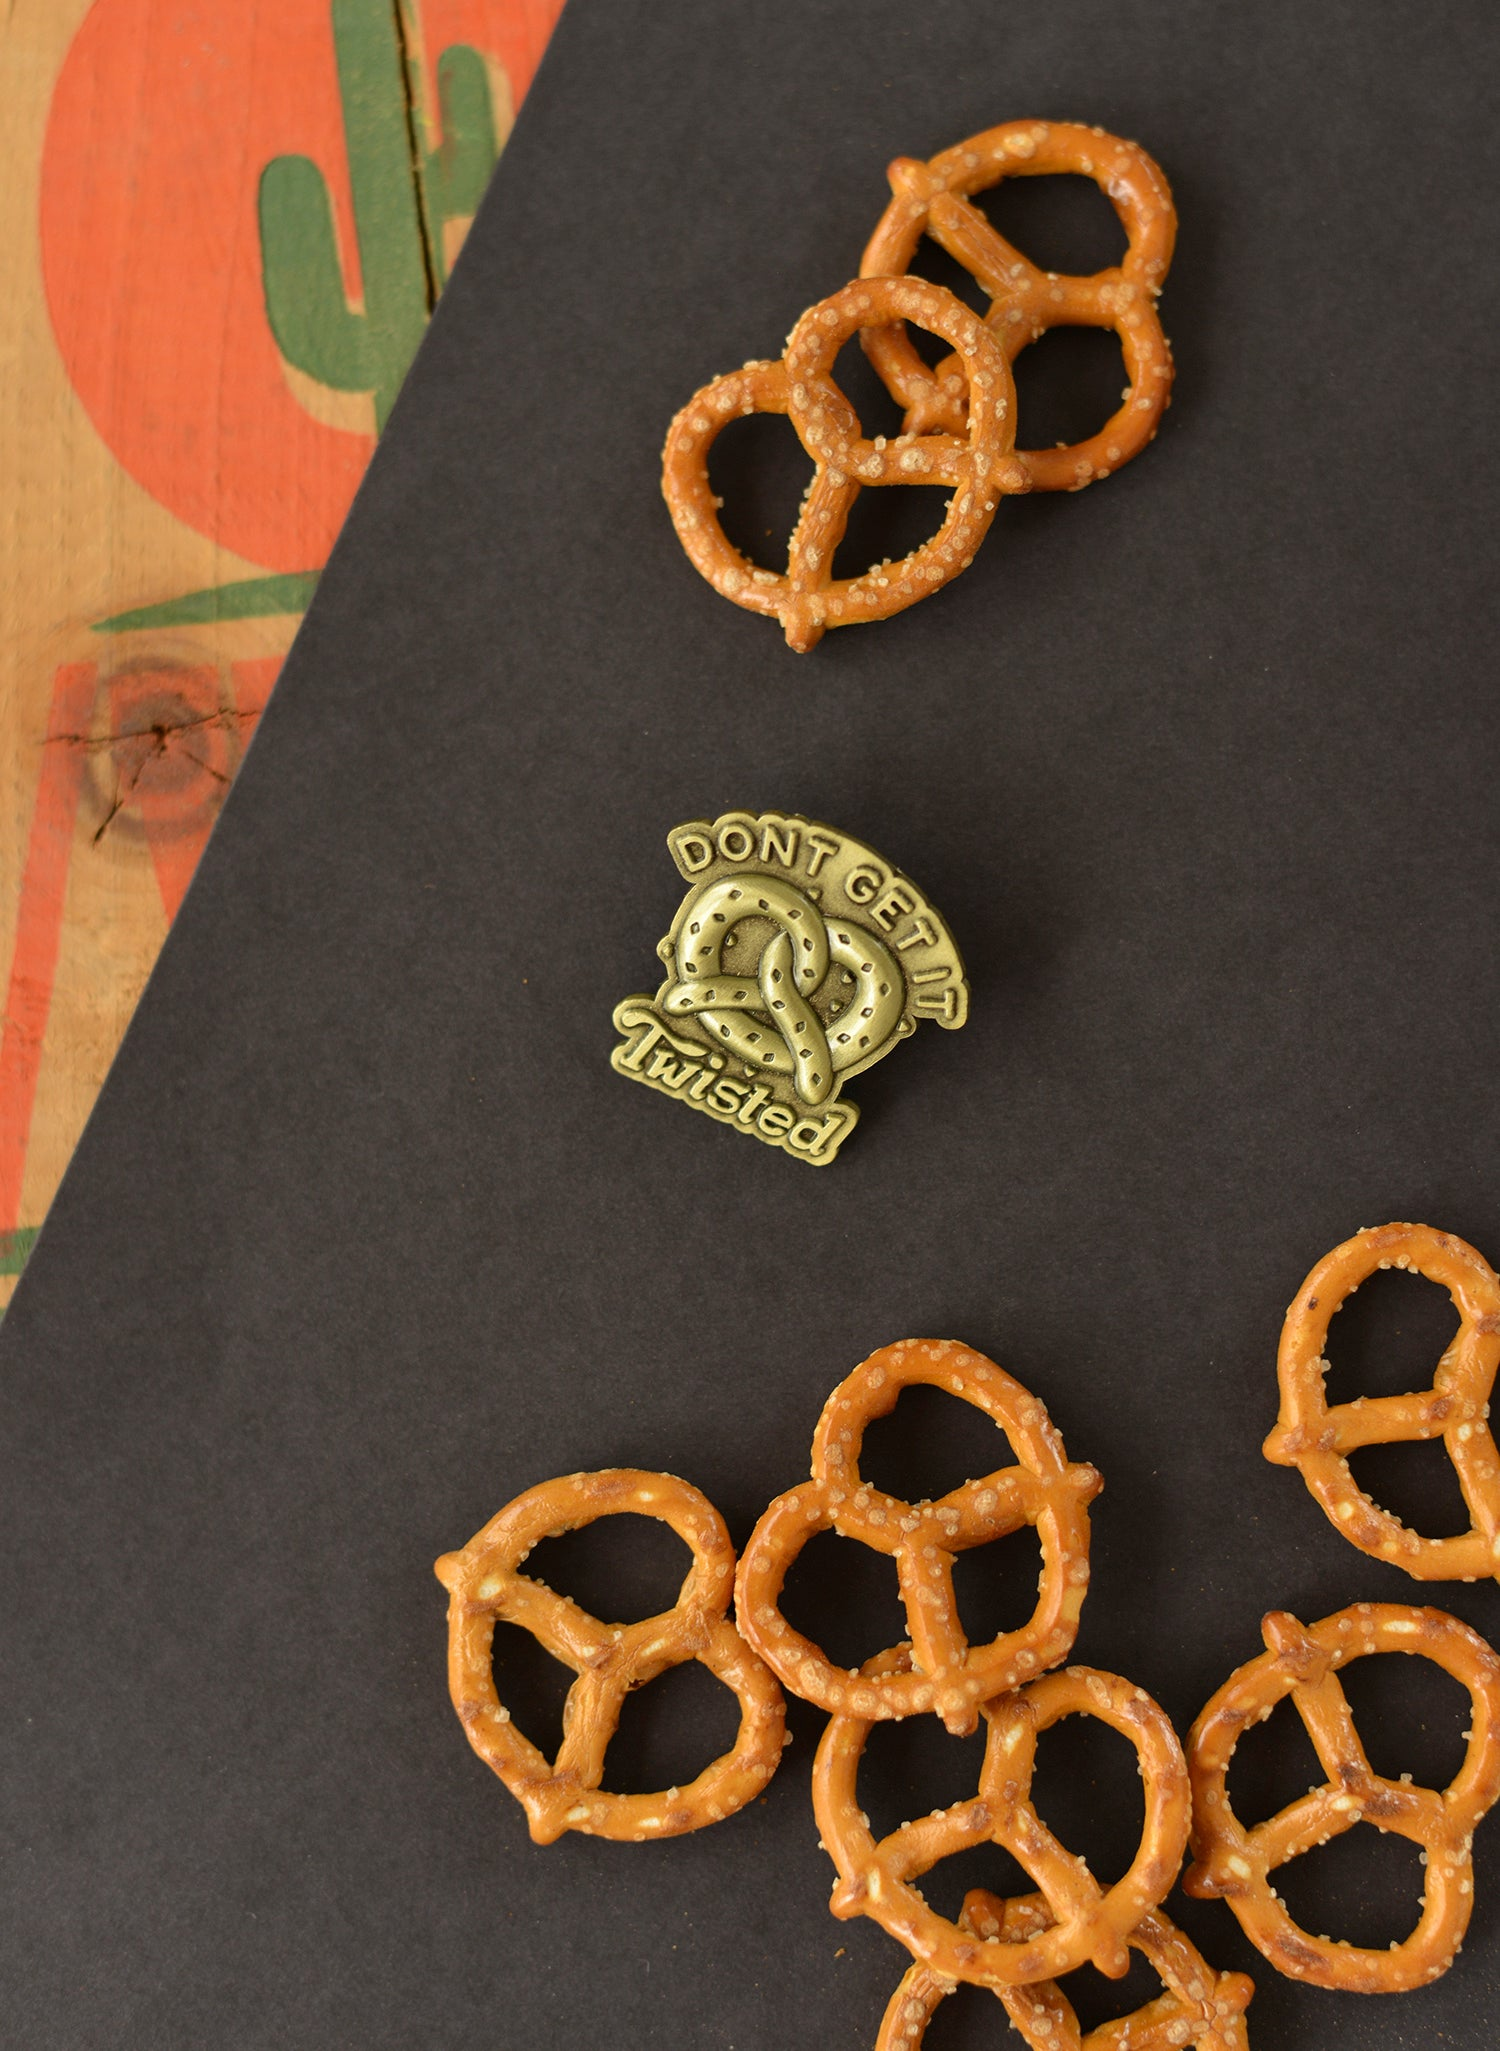 Dont Get it Twisted Soft Pretzel Philly Pretzel Foodie Food Pun Vintage Brass 3D Pin Brooch Food Jewelry Foodie Gift